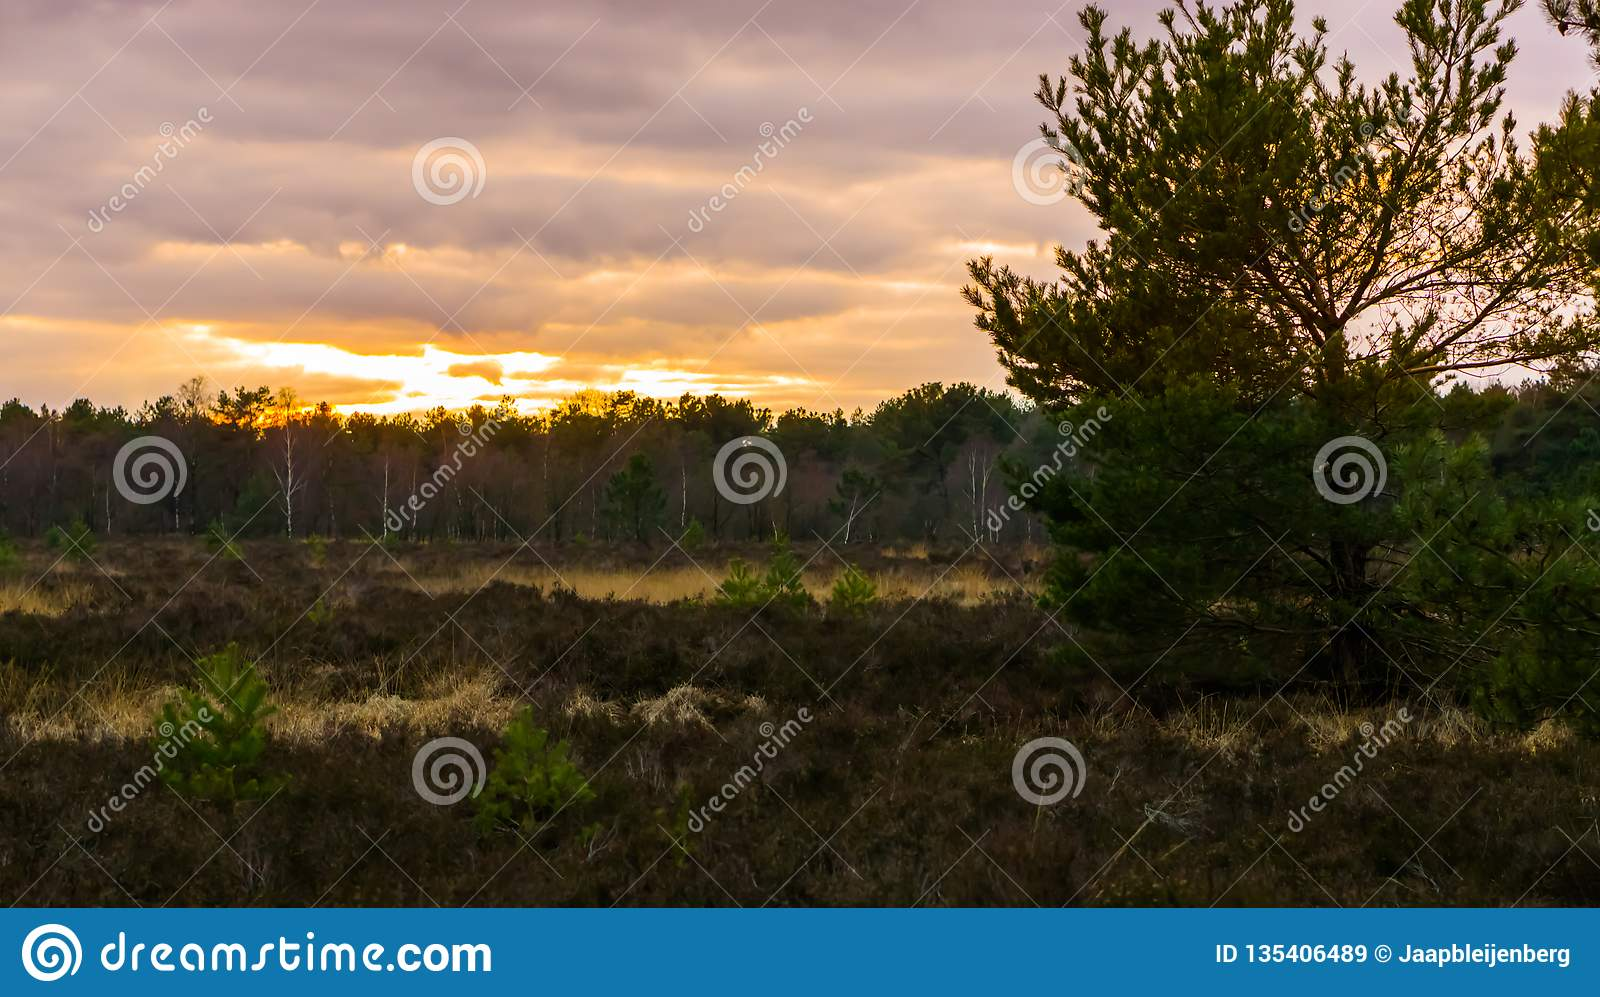 Beautiful heather landscape with a tree and view on the forest at sunset, sundown giving a colorful effect in the sky and clouds